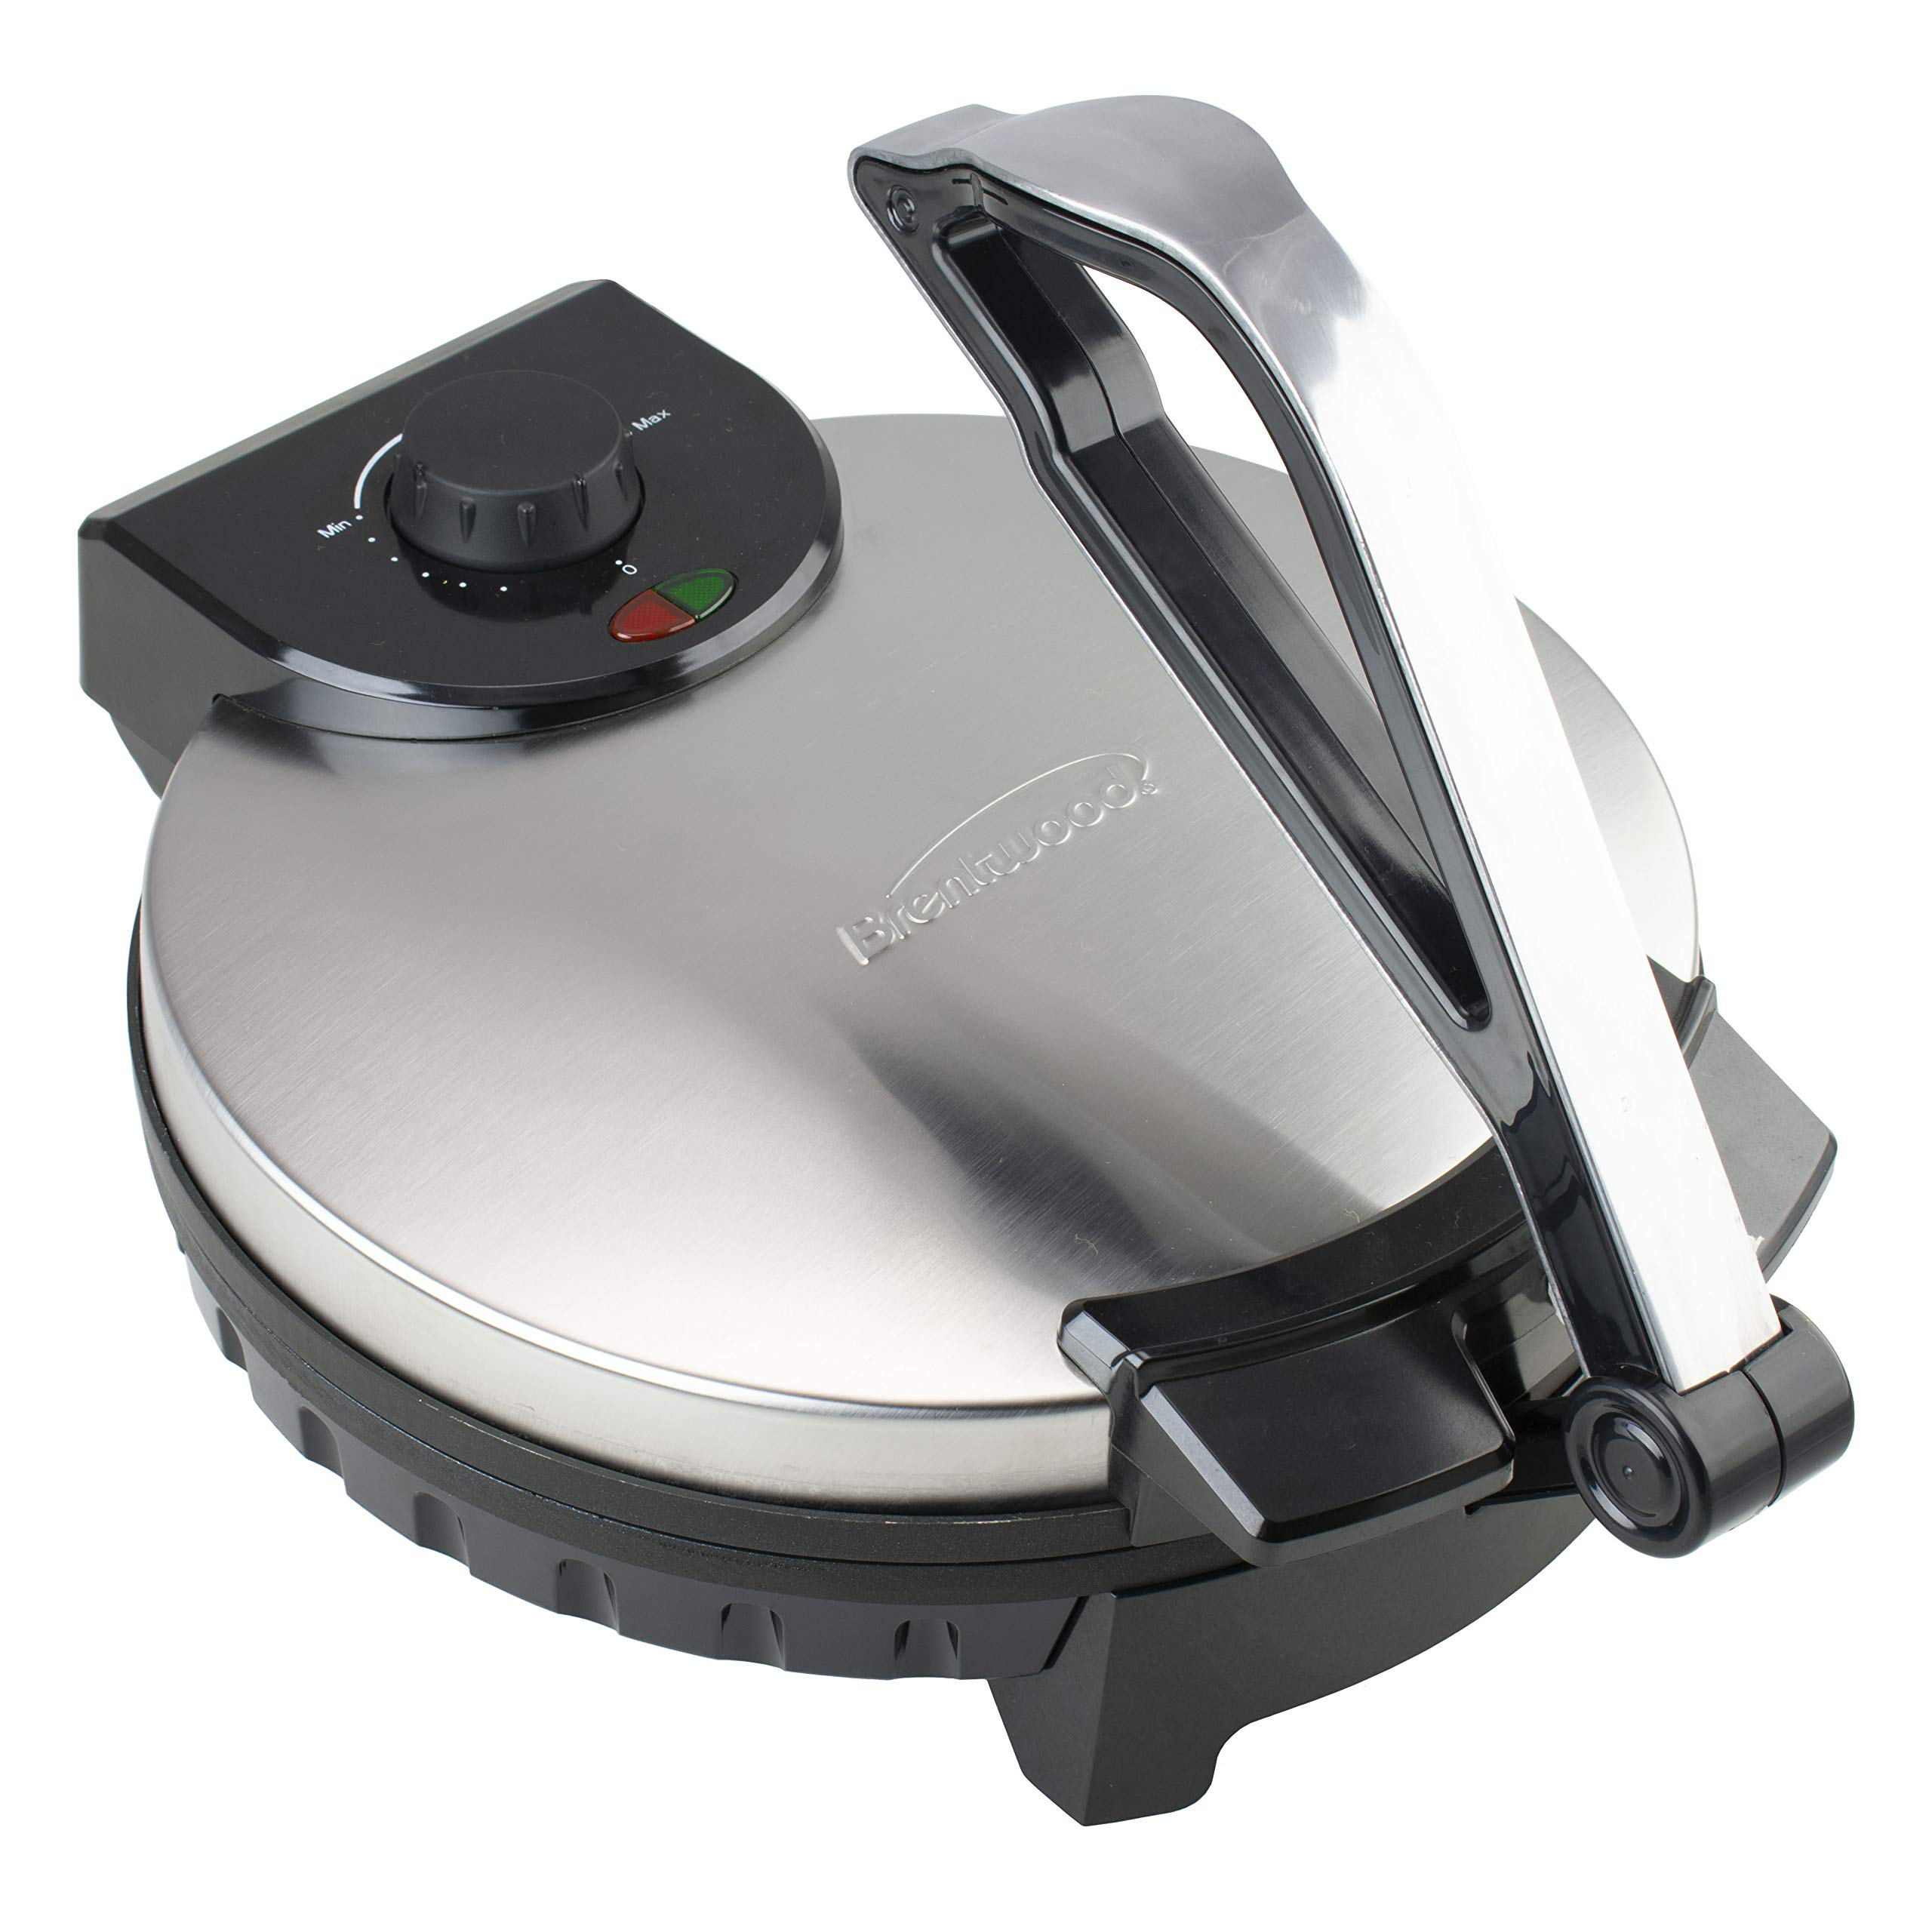 Brentwood Appliances TS-129 12-Inch Nonstick Electric Tortilla Maker, 12in, Metallic